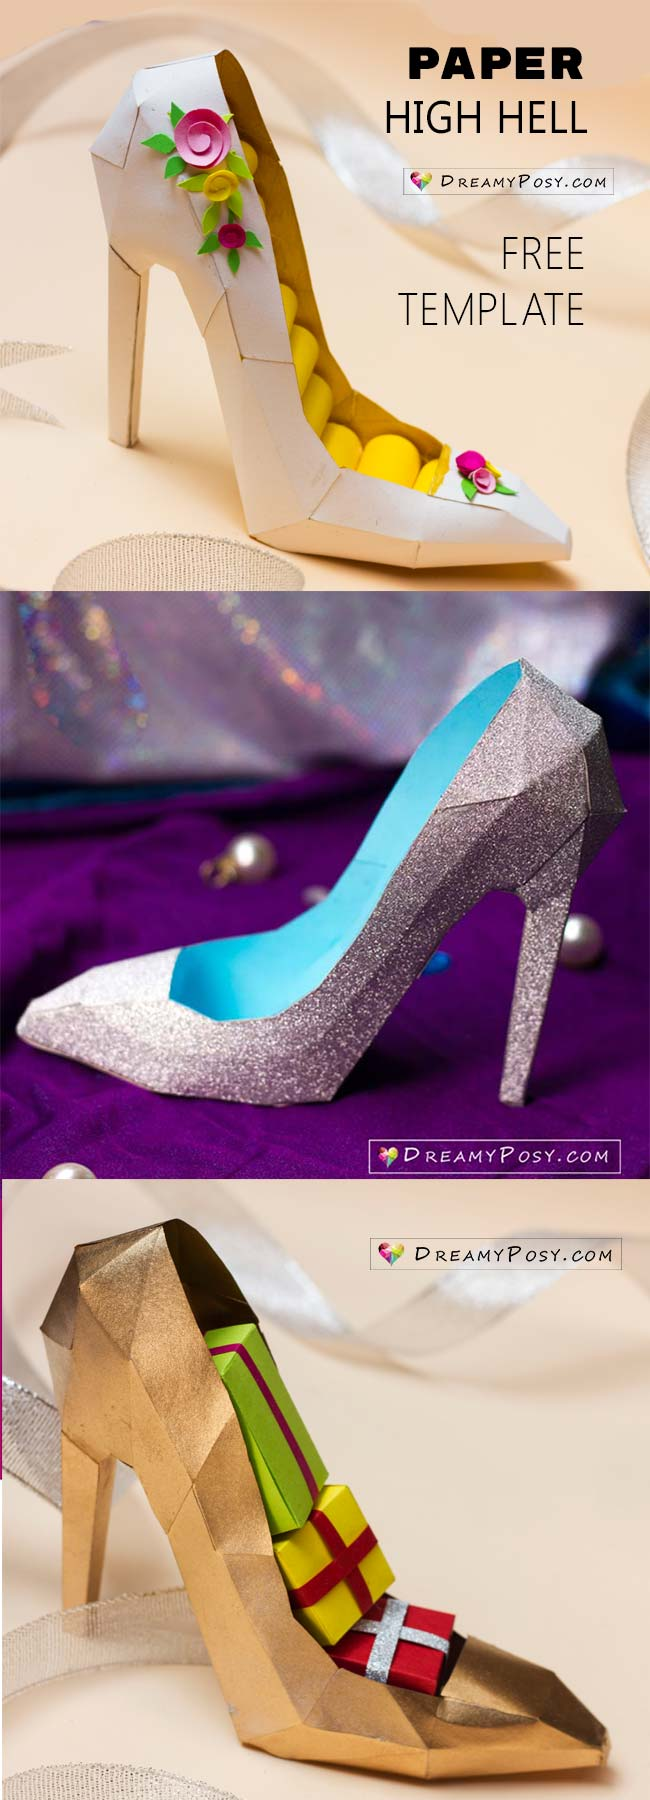 3D Paper Shoe With Free Templateand Video Tutorial Shoetemplate Paperhighheel Papershoe